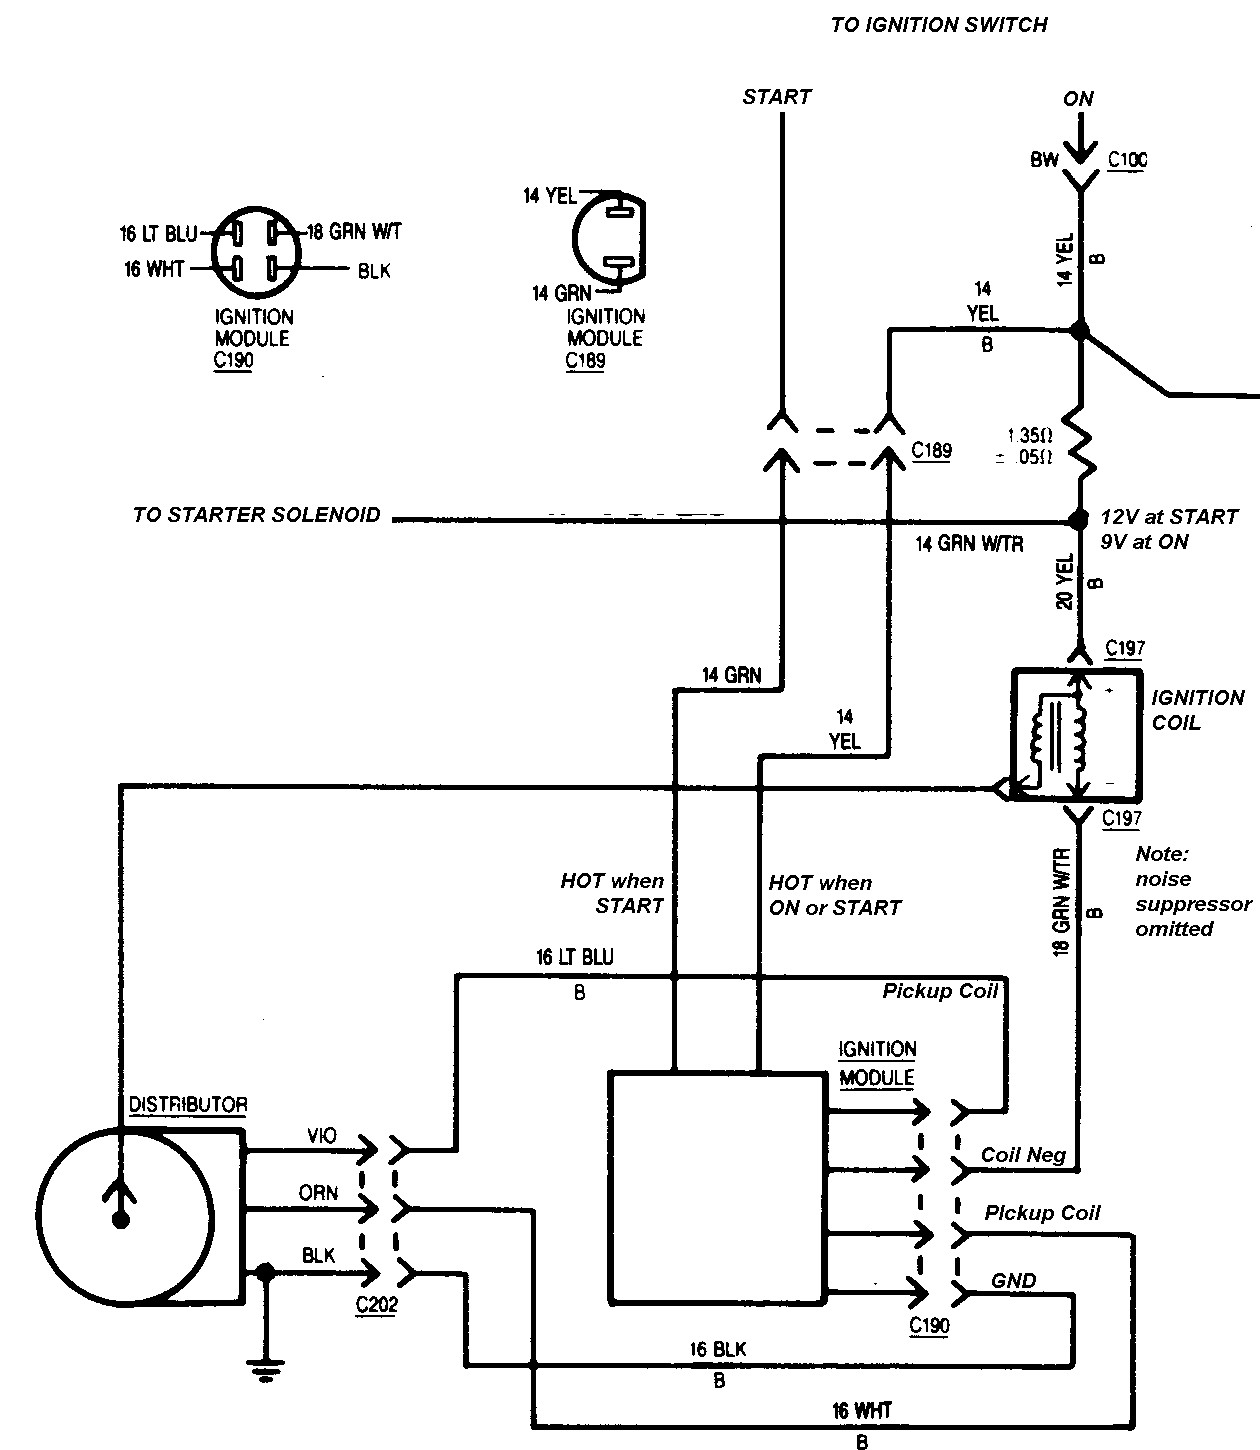 medium resolution of chevy 4 3 wiring harness wiring diagram diagram moreover 350 chevy engine likewise chevy fuel pump wiring